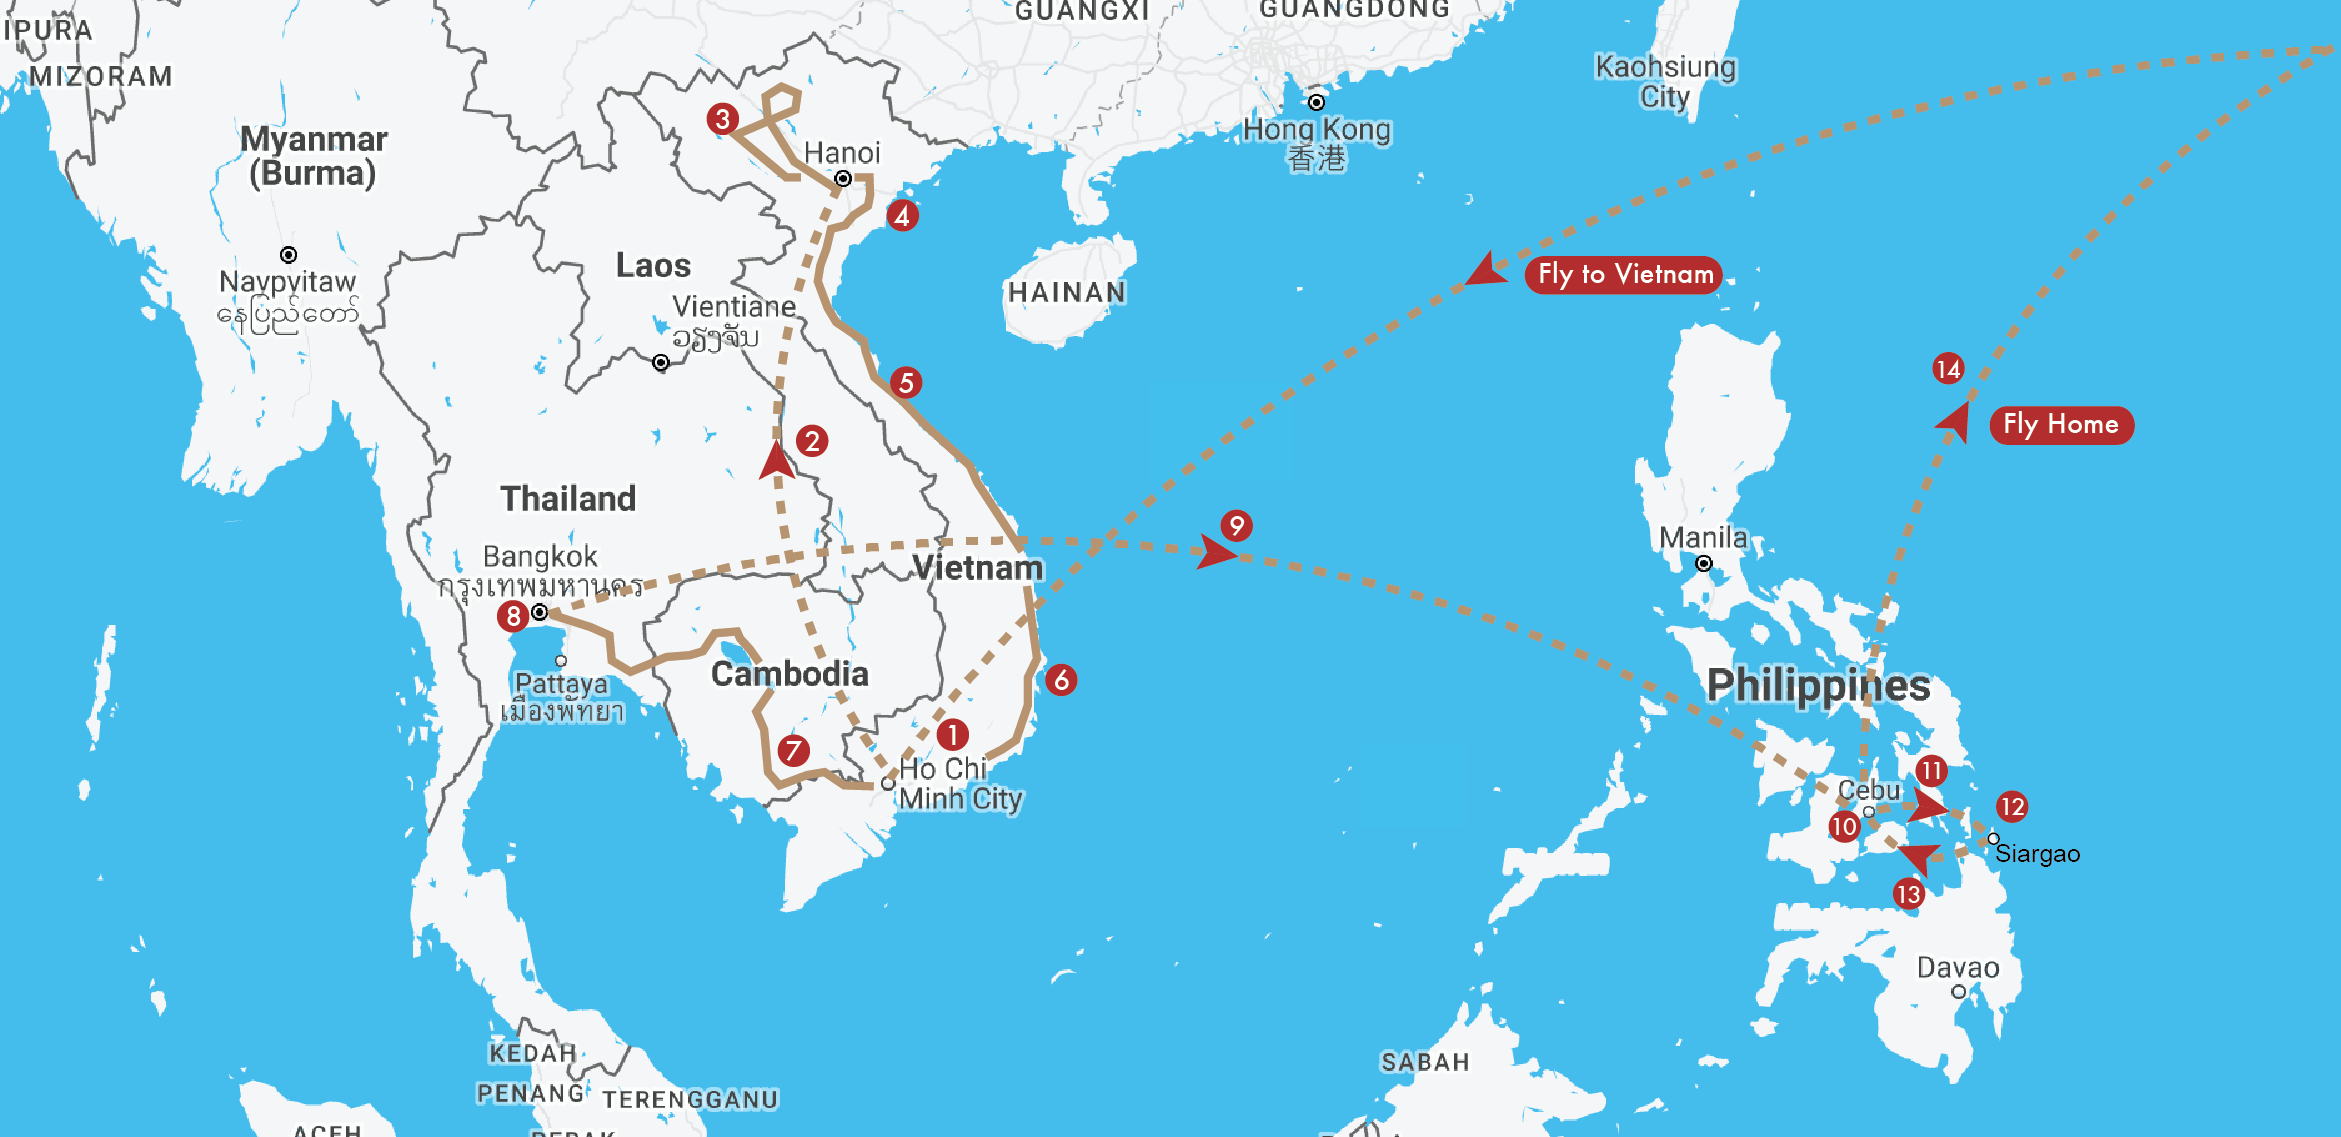 Southeast Asia Travel Itinerary Map